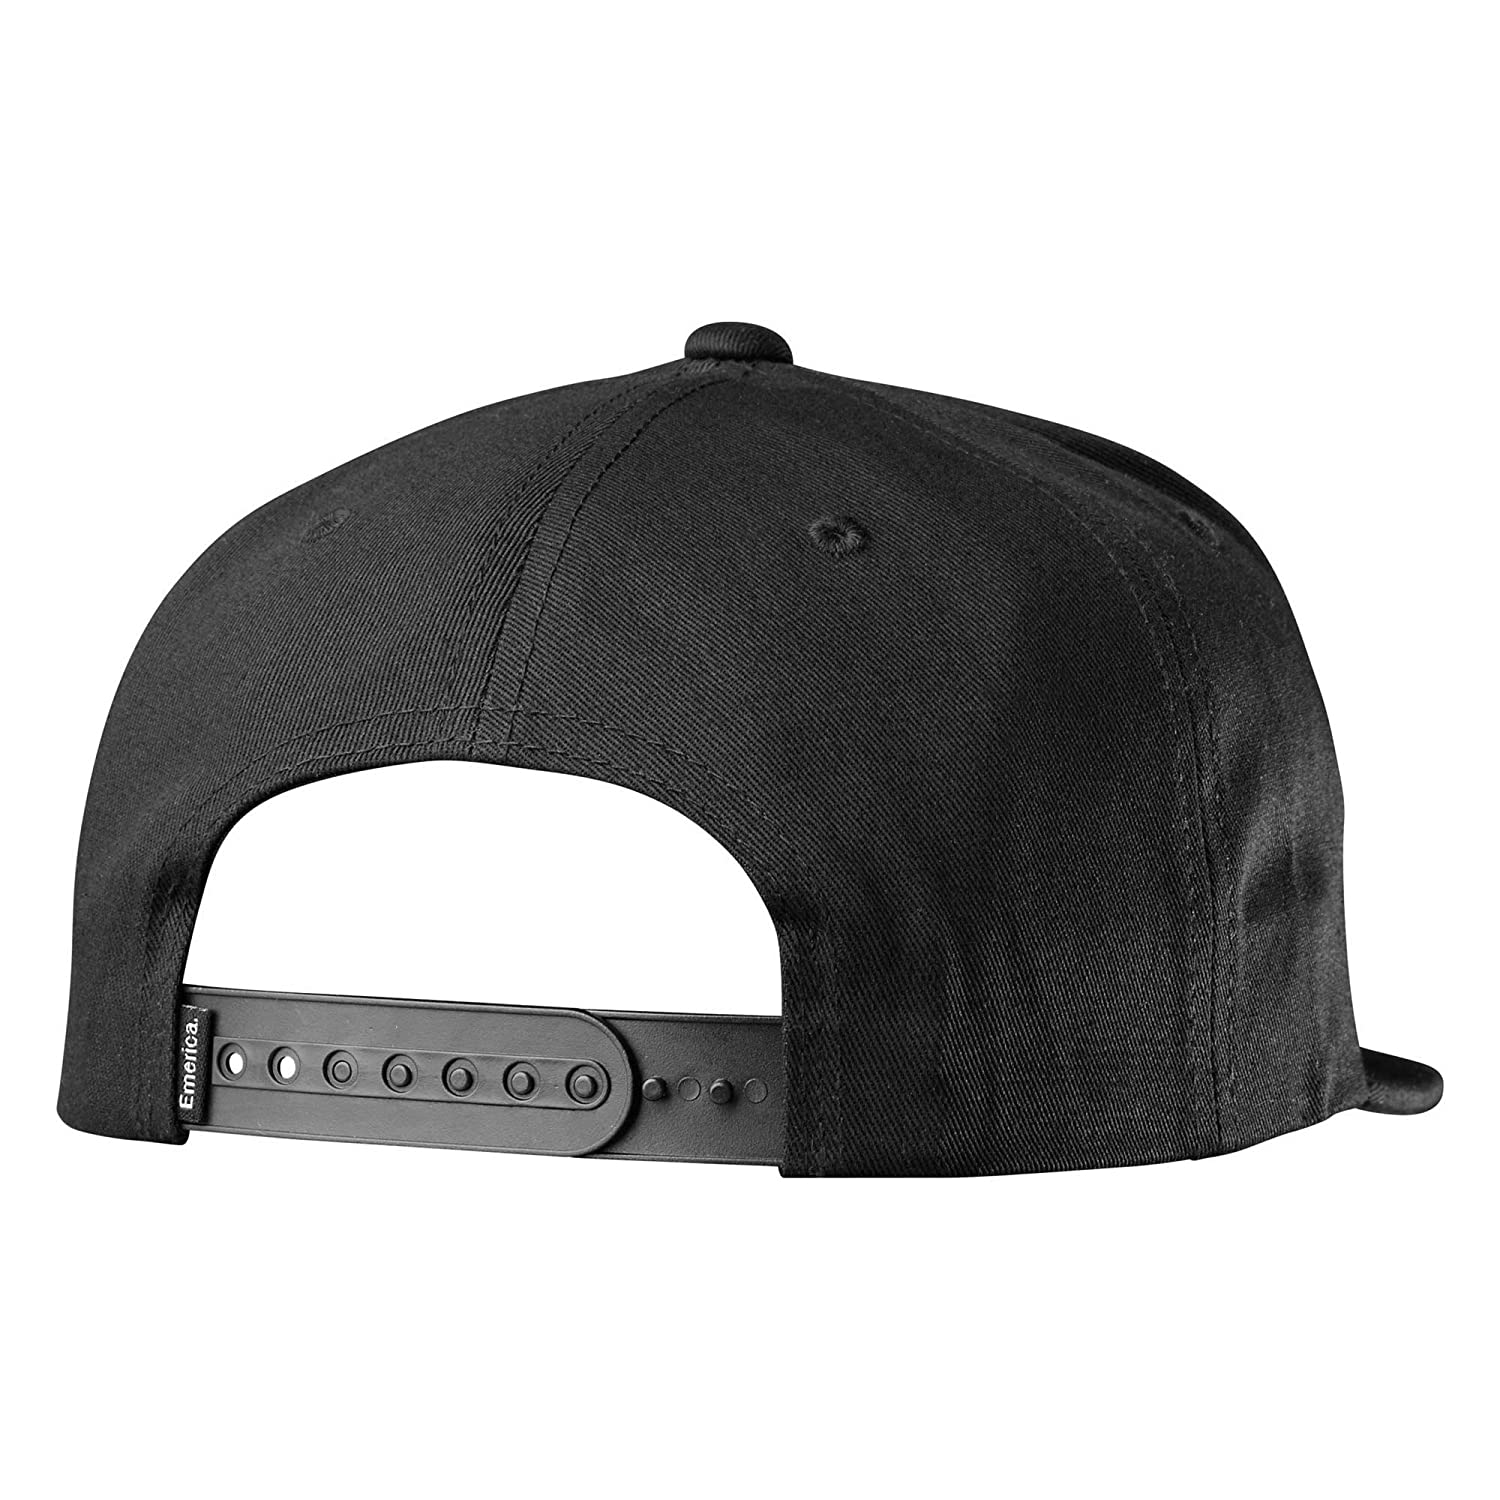 38ef04eeffbb3 Amazon.com  Emerica Men s Triangle Snapback Cap